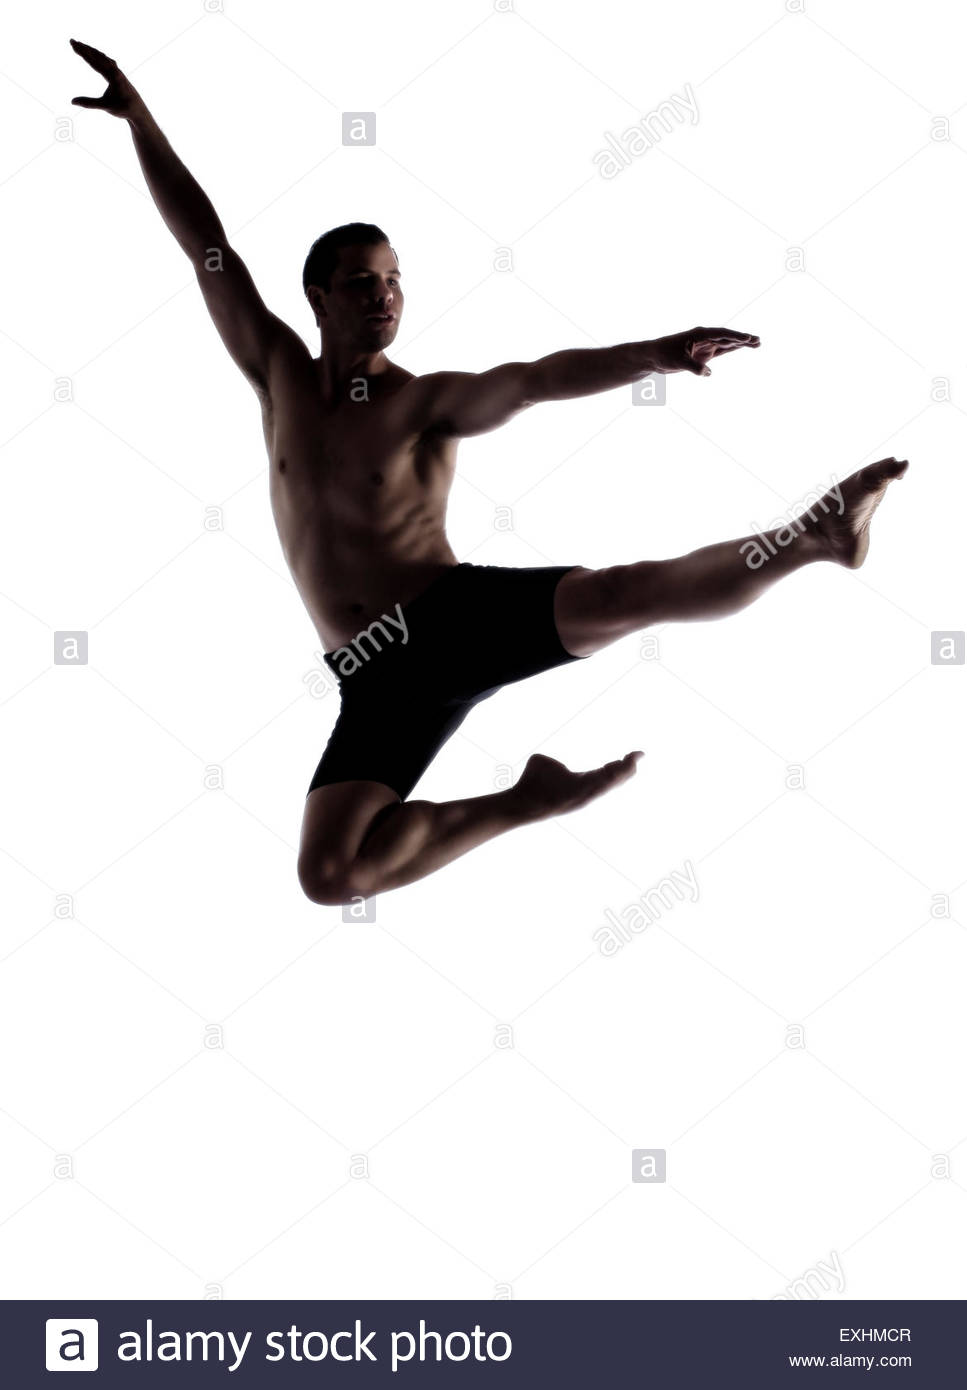 967x1390 Silhouette Of An Muscular Adult Male Modern Contemporary Ballet